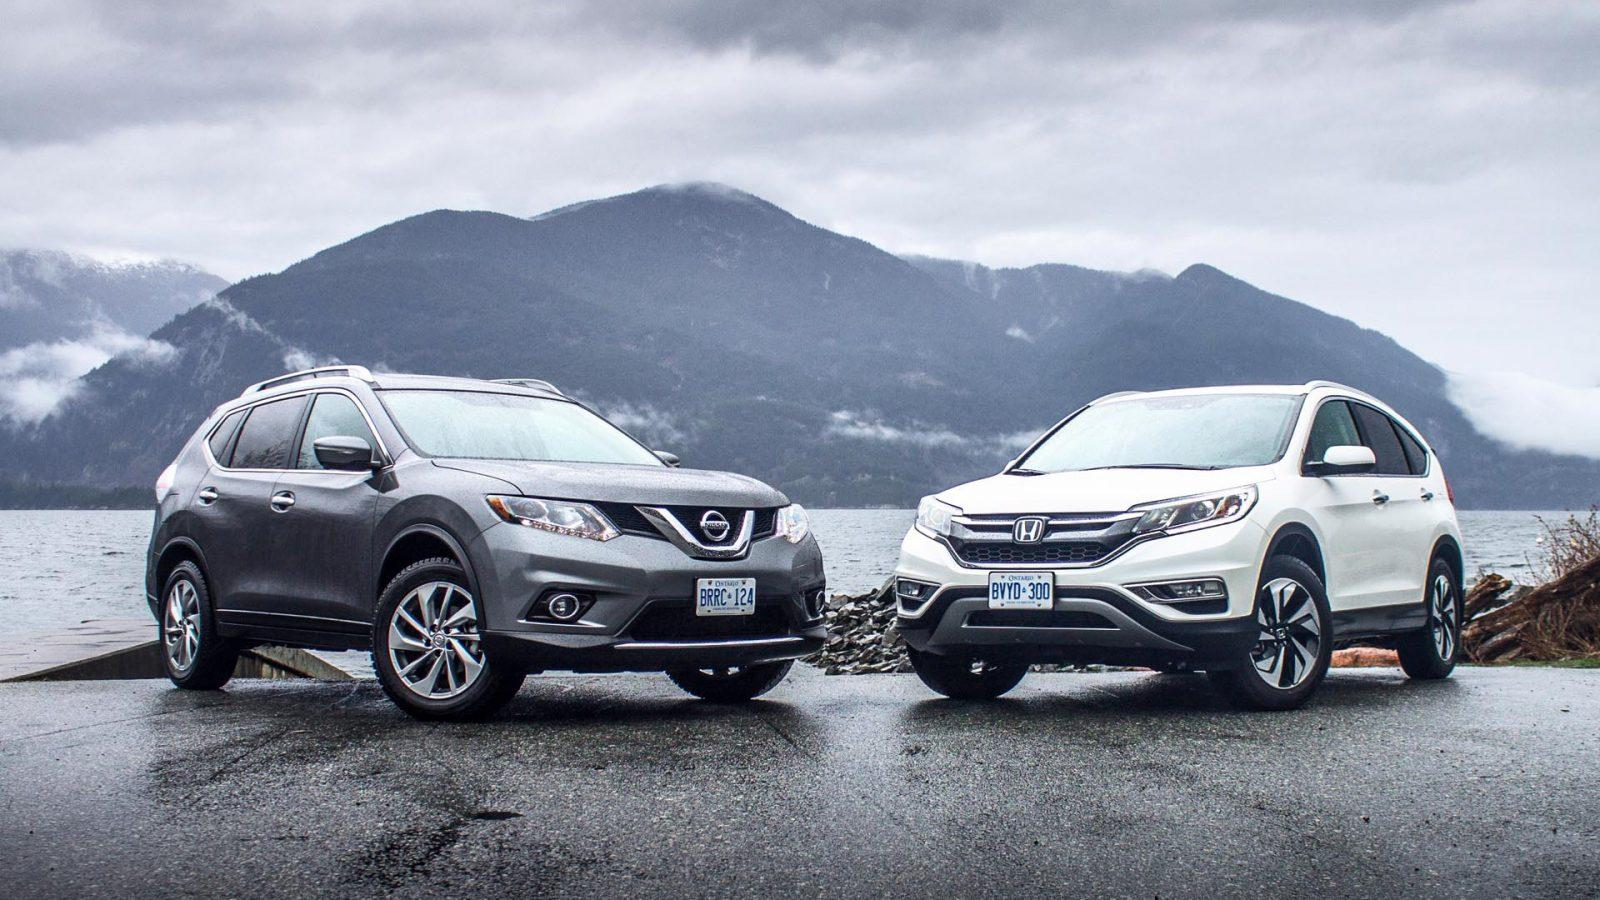 Honda crv vs nissan rogue car from japan for Which is better nissan rogue or honda crv